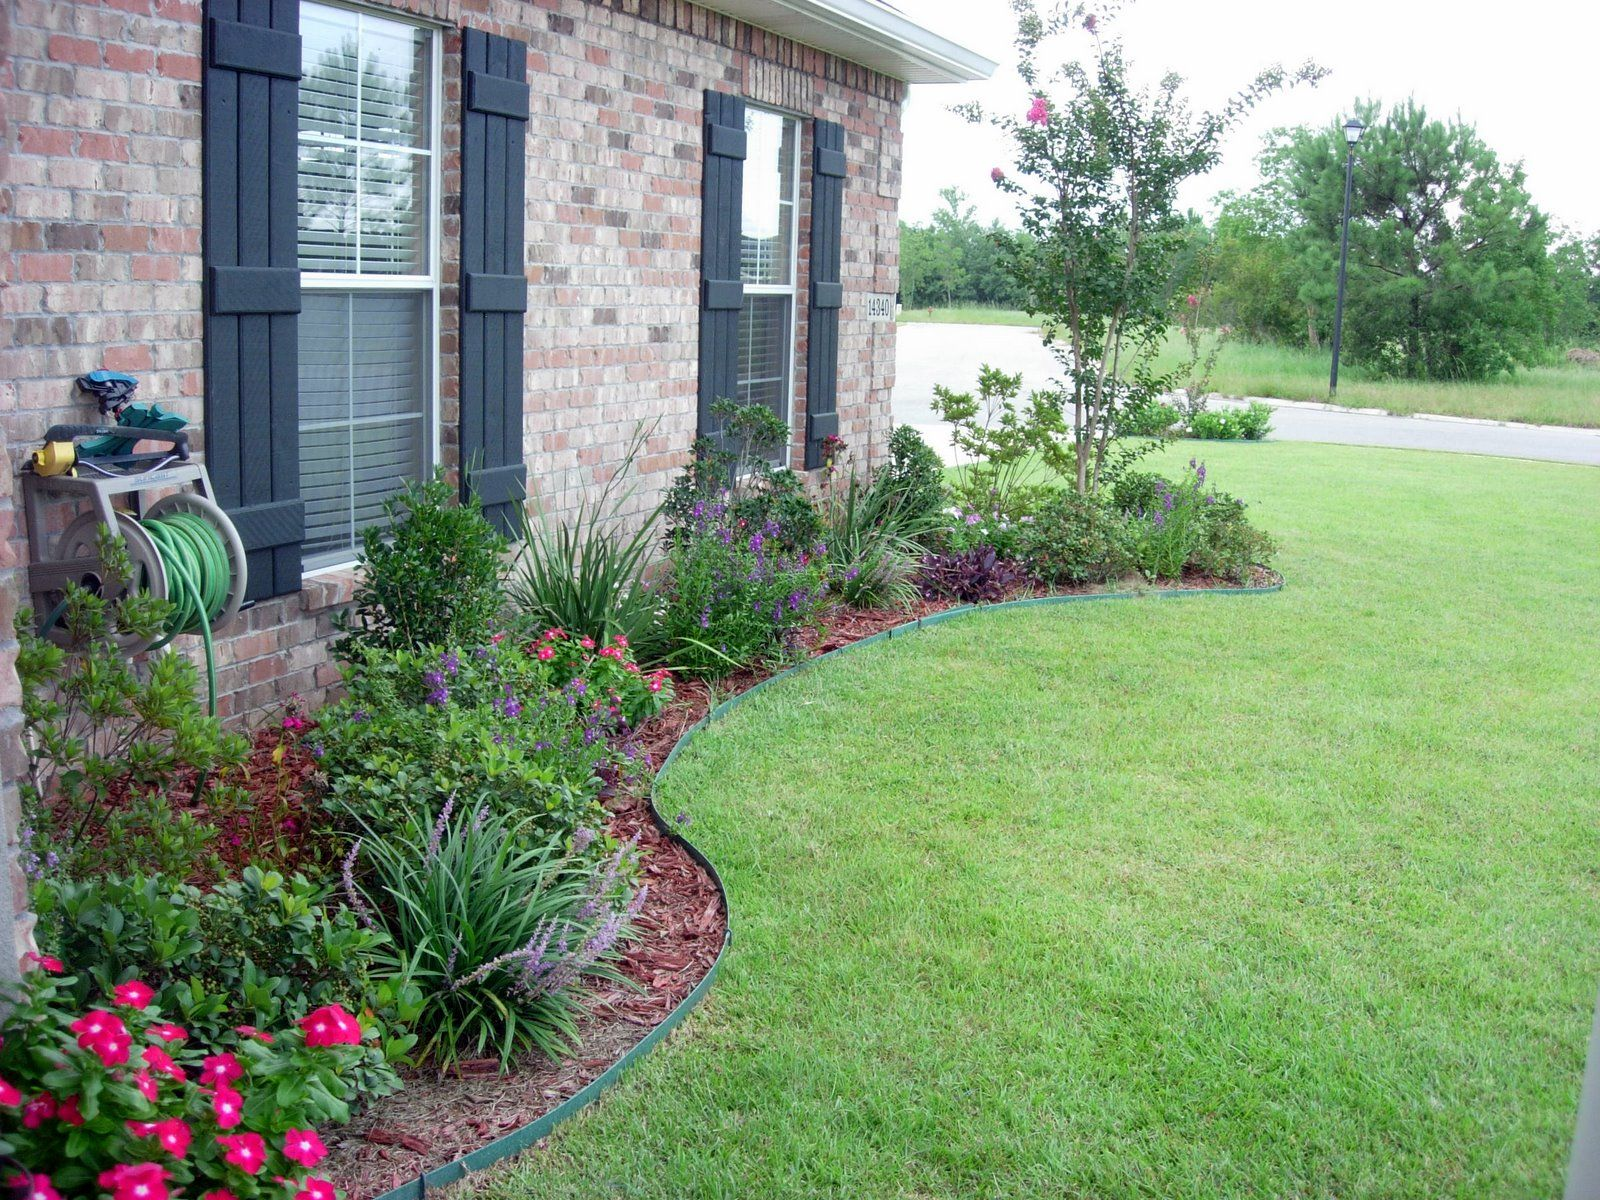 Home and garden front yard - Flower Bed Designs For Front Of House Use Shrubs Small Trees To Form The